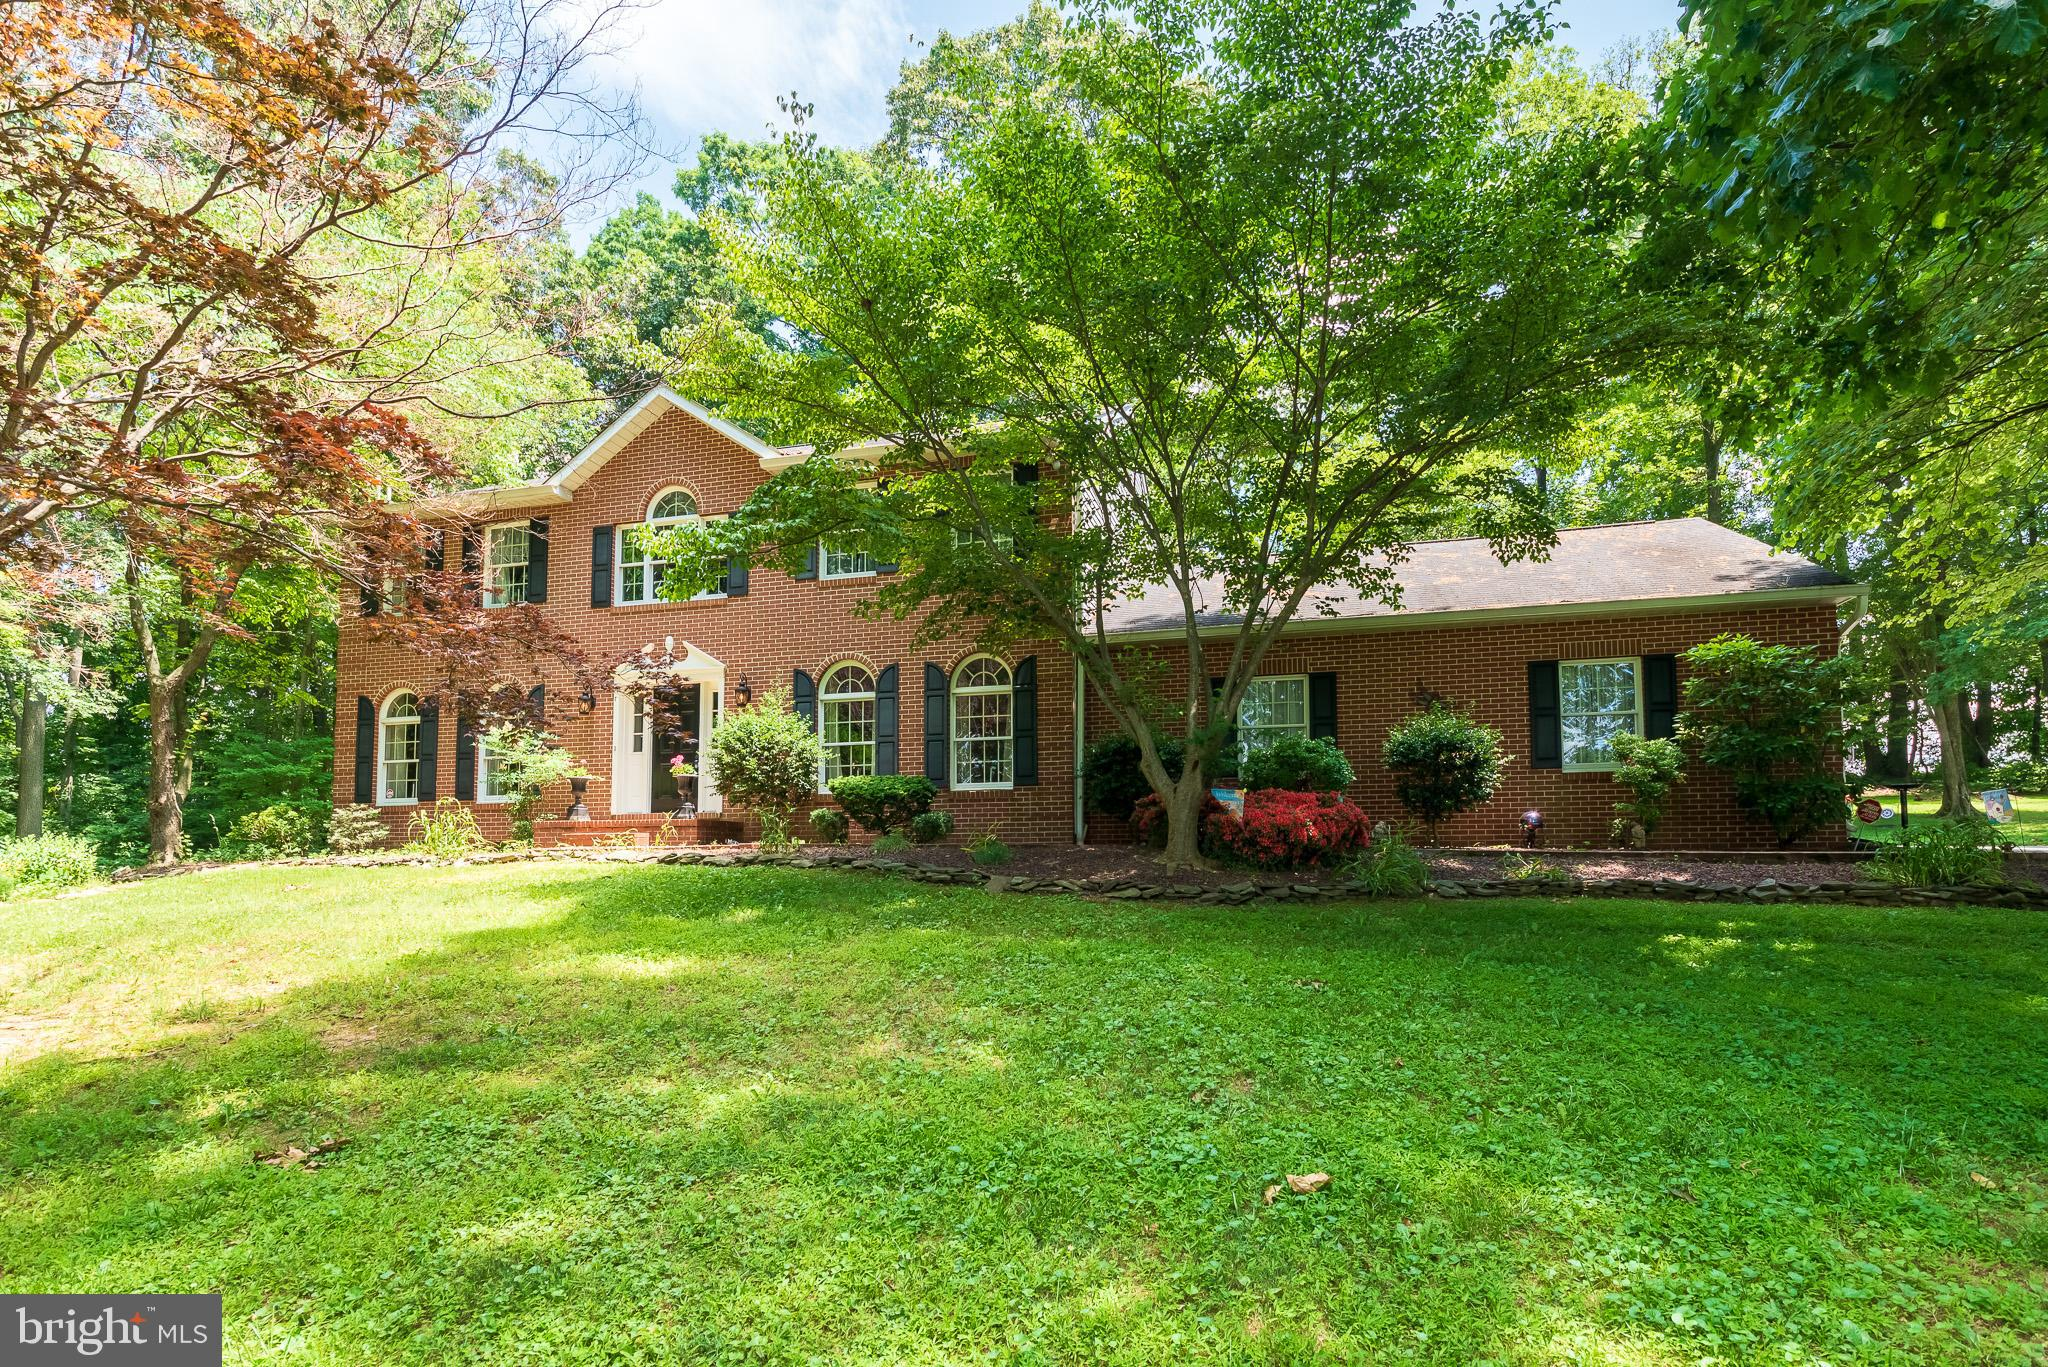 Stately brick front 4 bedroom 2.5 bath colonial with oversized 2 car garage is located on a beautifu